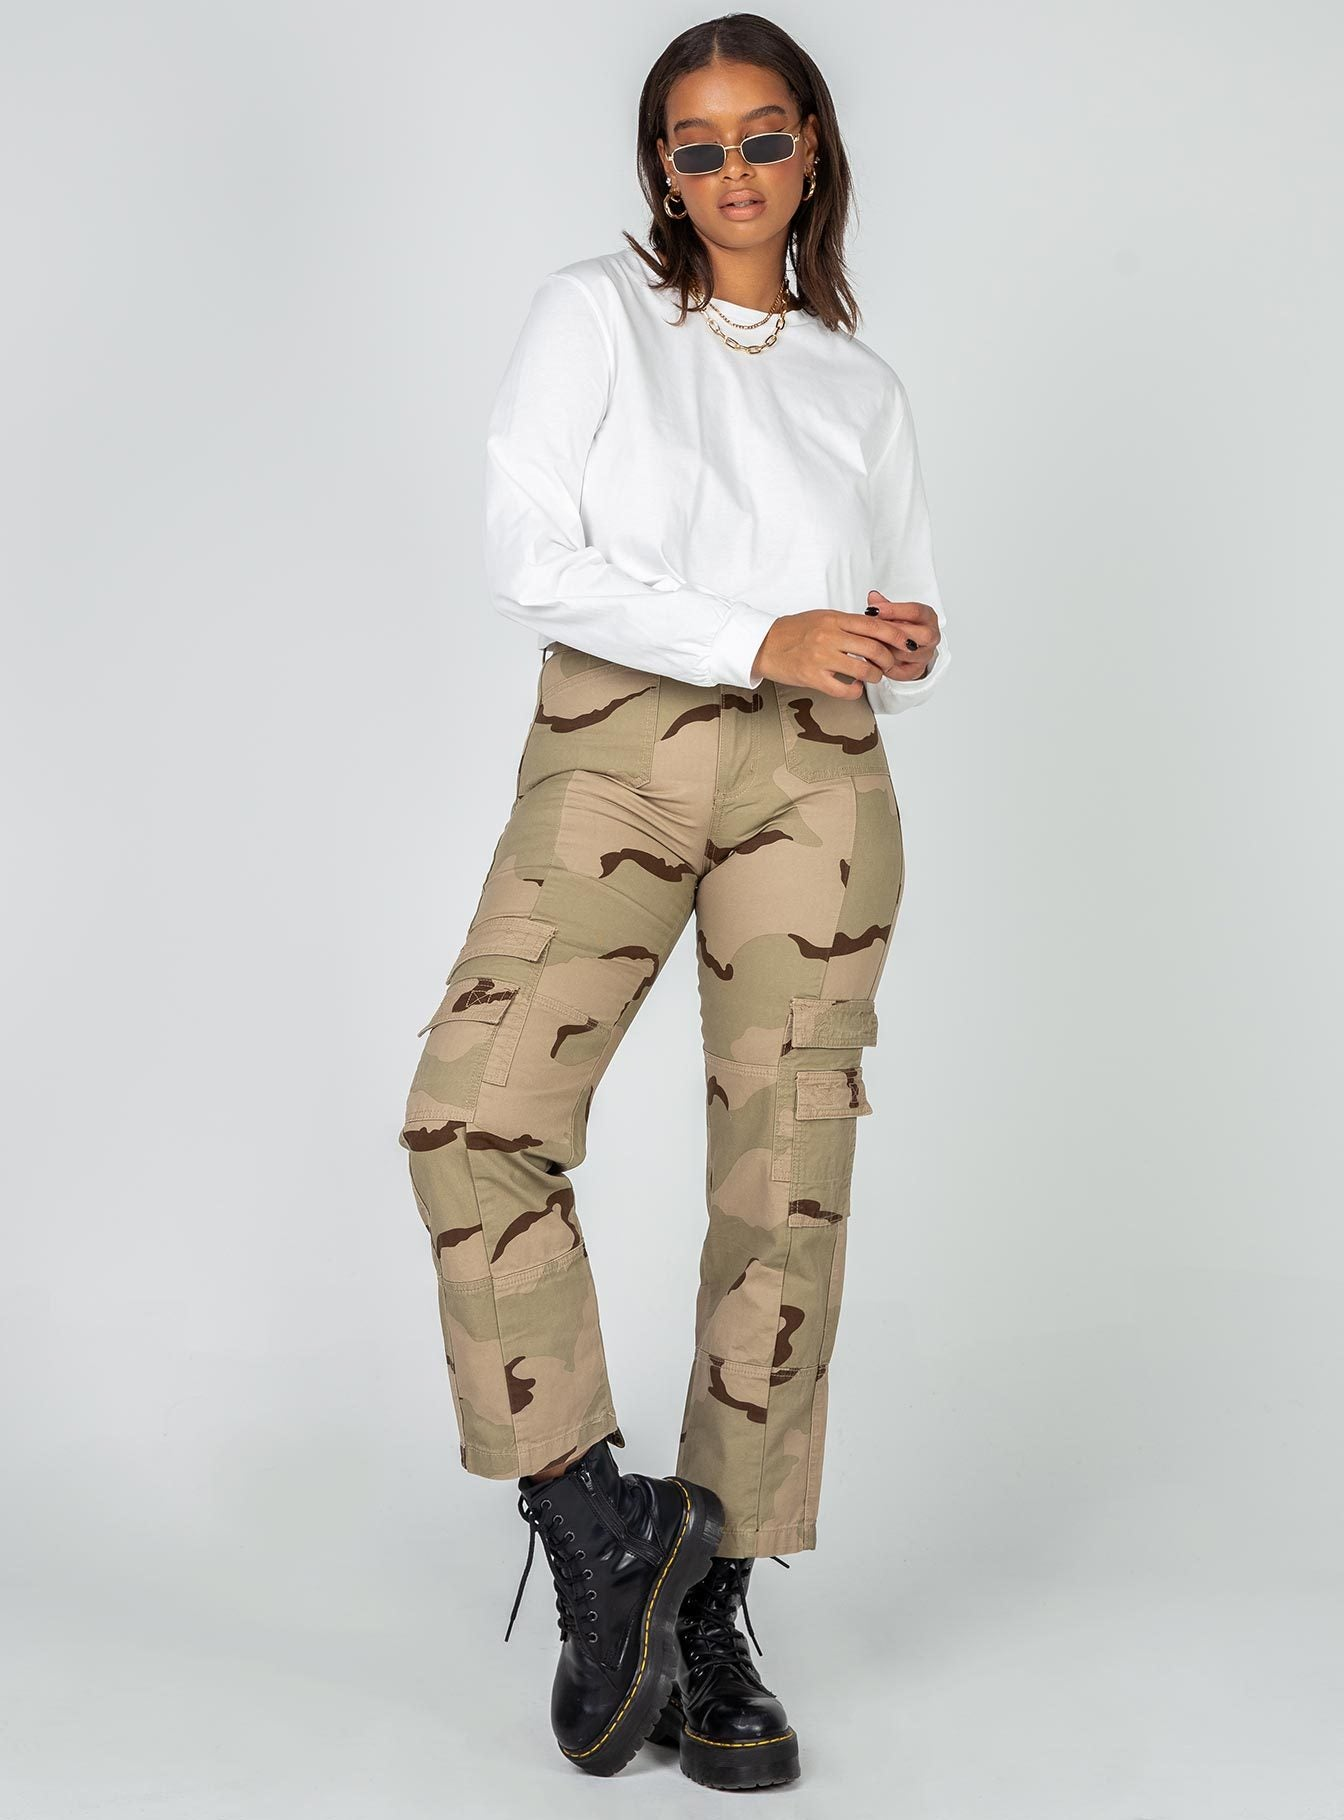 The Stacey Jeans Camo